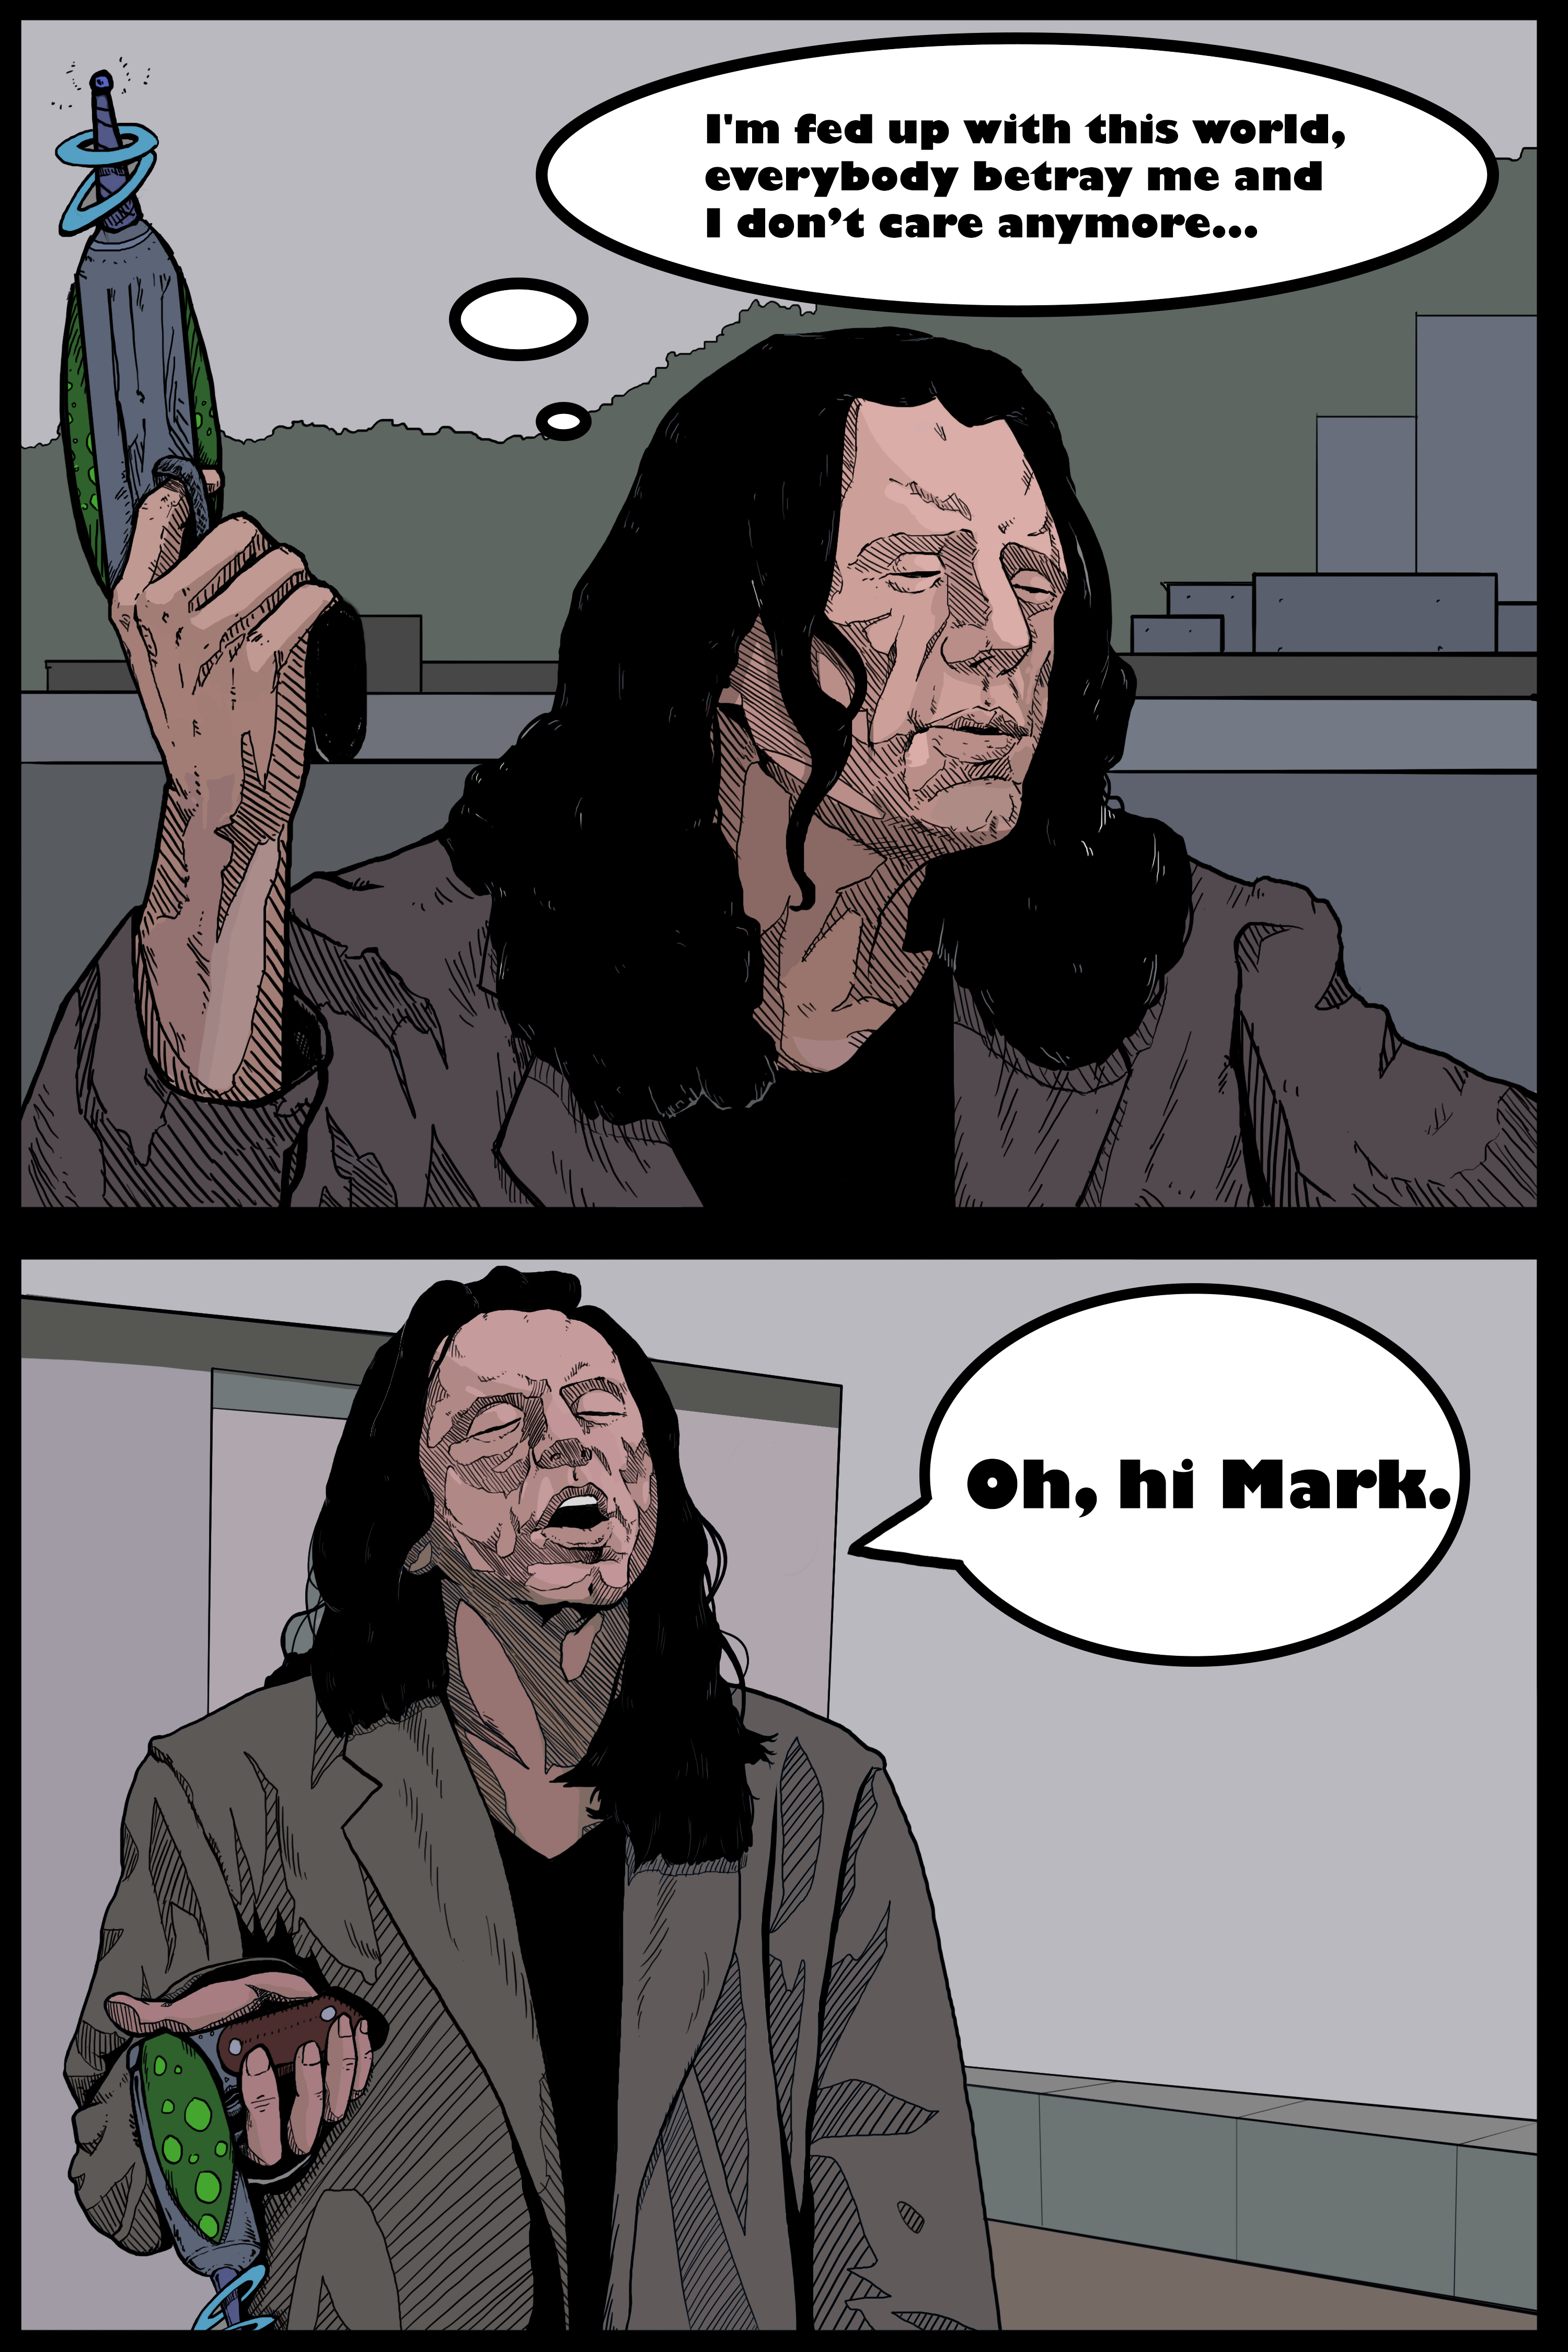 Tommy Wiseau Quotes The Room Quotes Comic Book Page